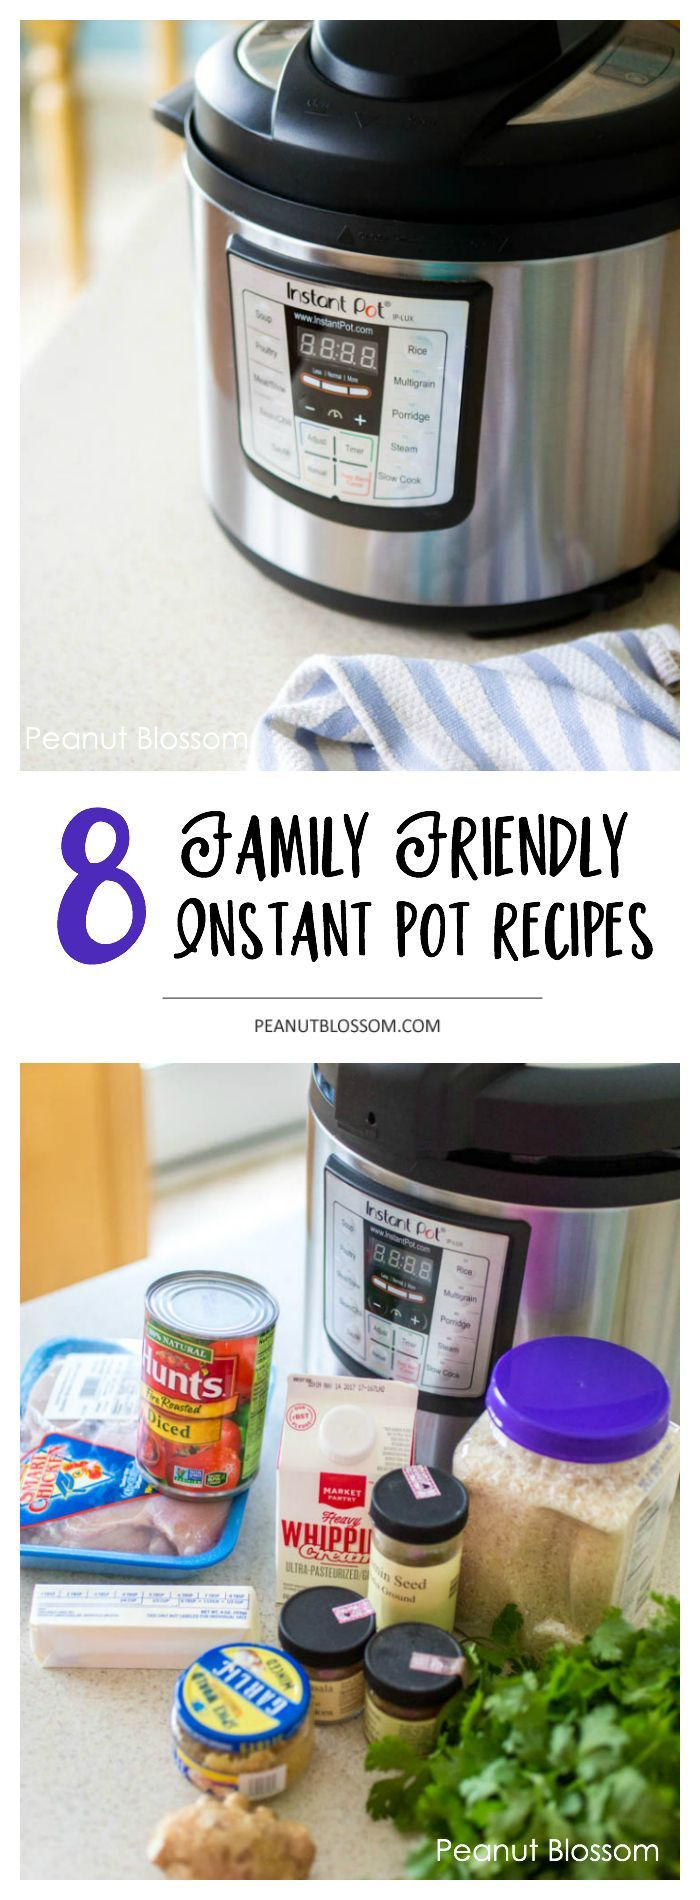 8 family friendly Instant Pot recipes: perfect for busy school nights this fall or for the hectic holiday season! Great instant pot dinner ideas that kids will love. The butter chicken is our favorite!